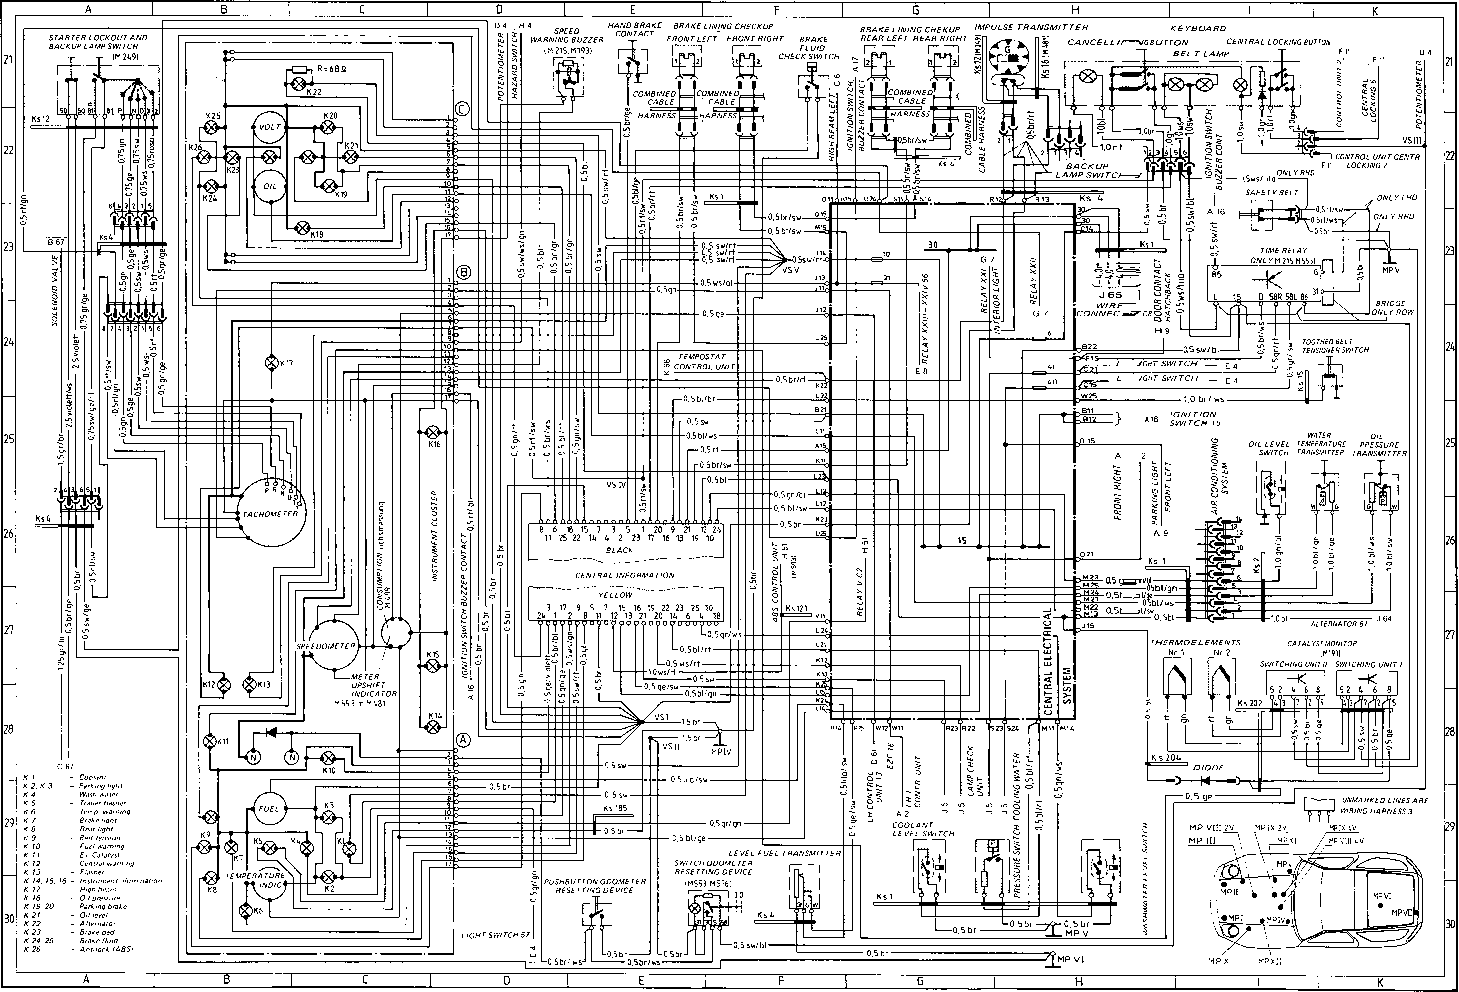 2129_923_2014 porsche 928 wiring diagram ecu wiring diagram on ecu download wirning diagrams rb25det s2 wiring diagram at aneh.co